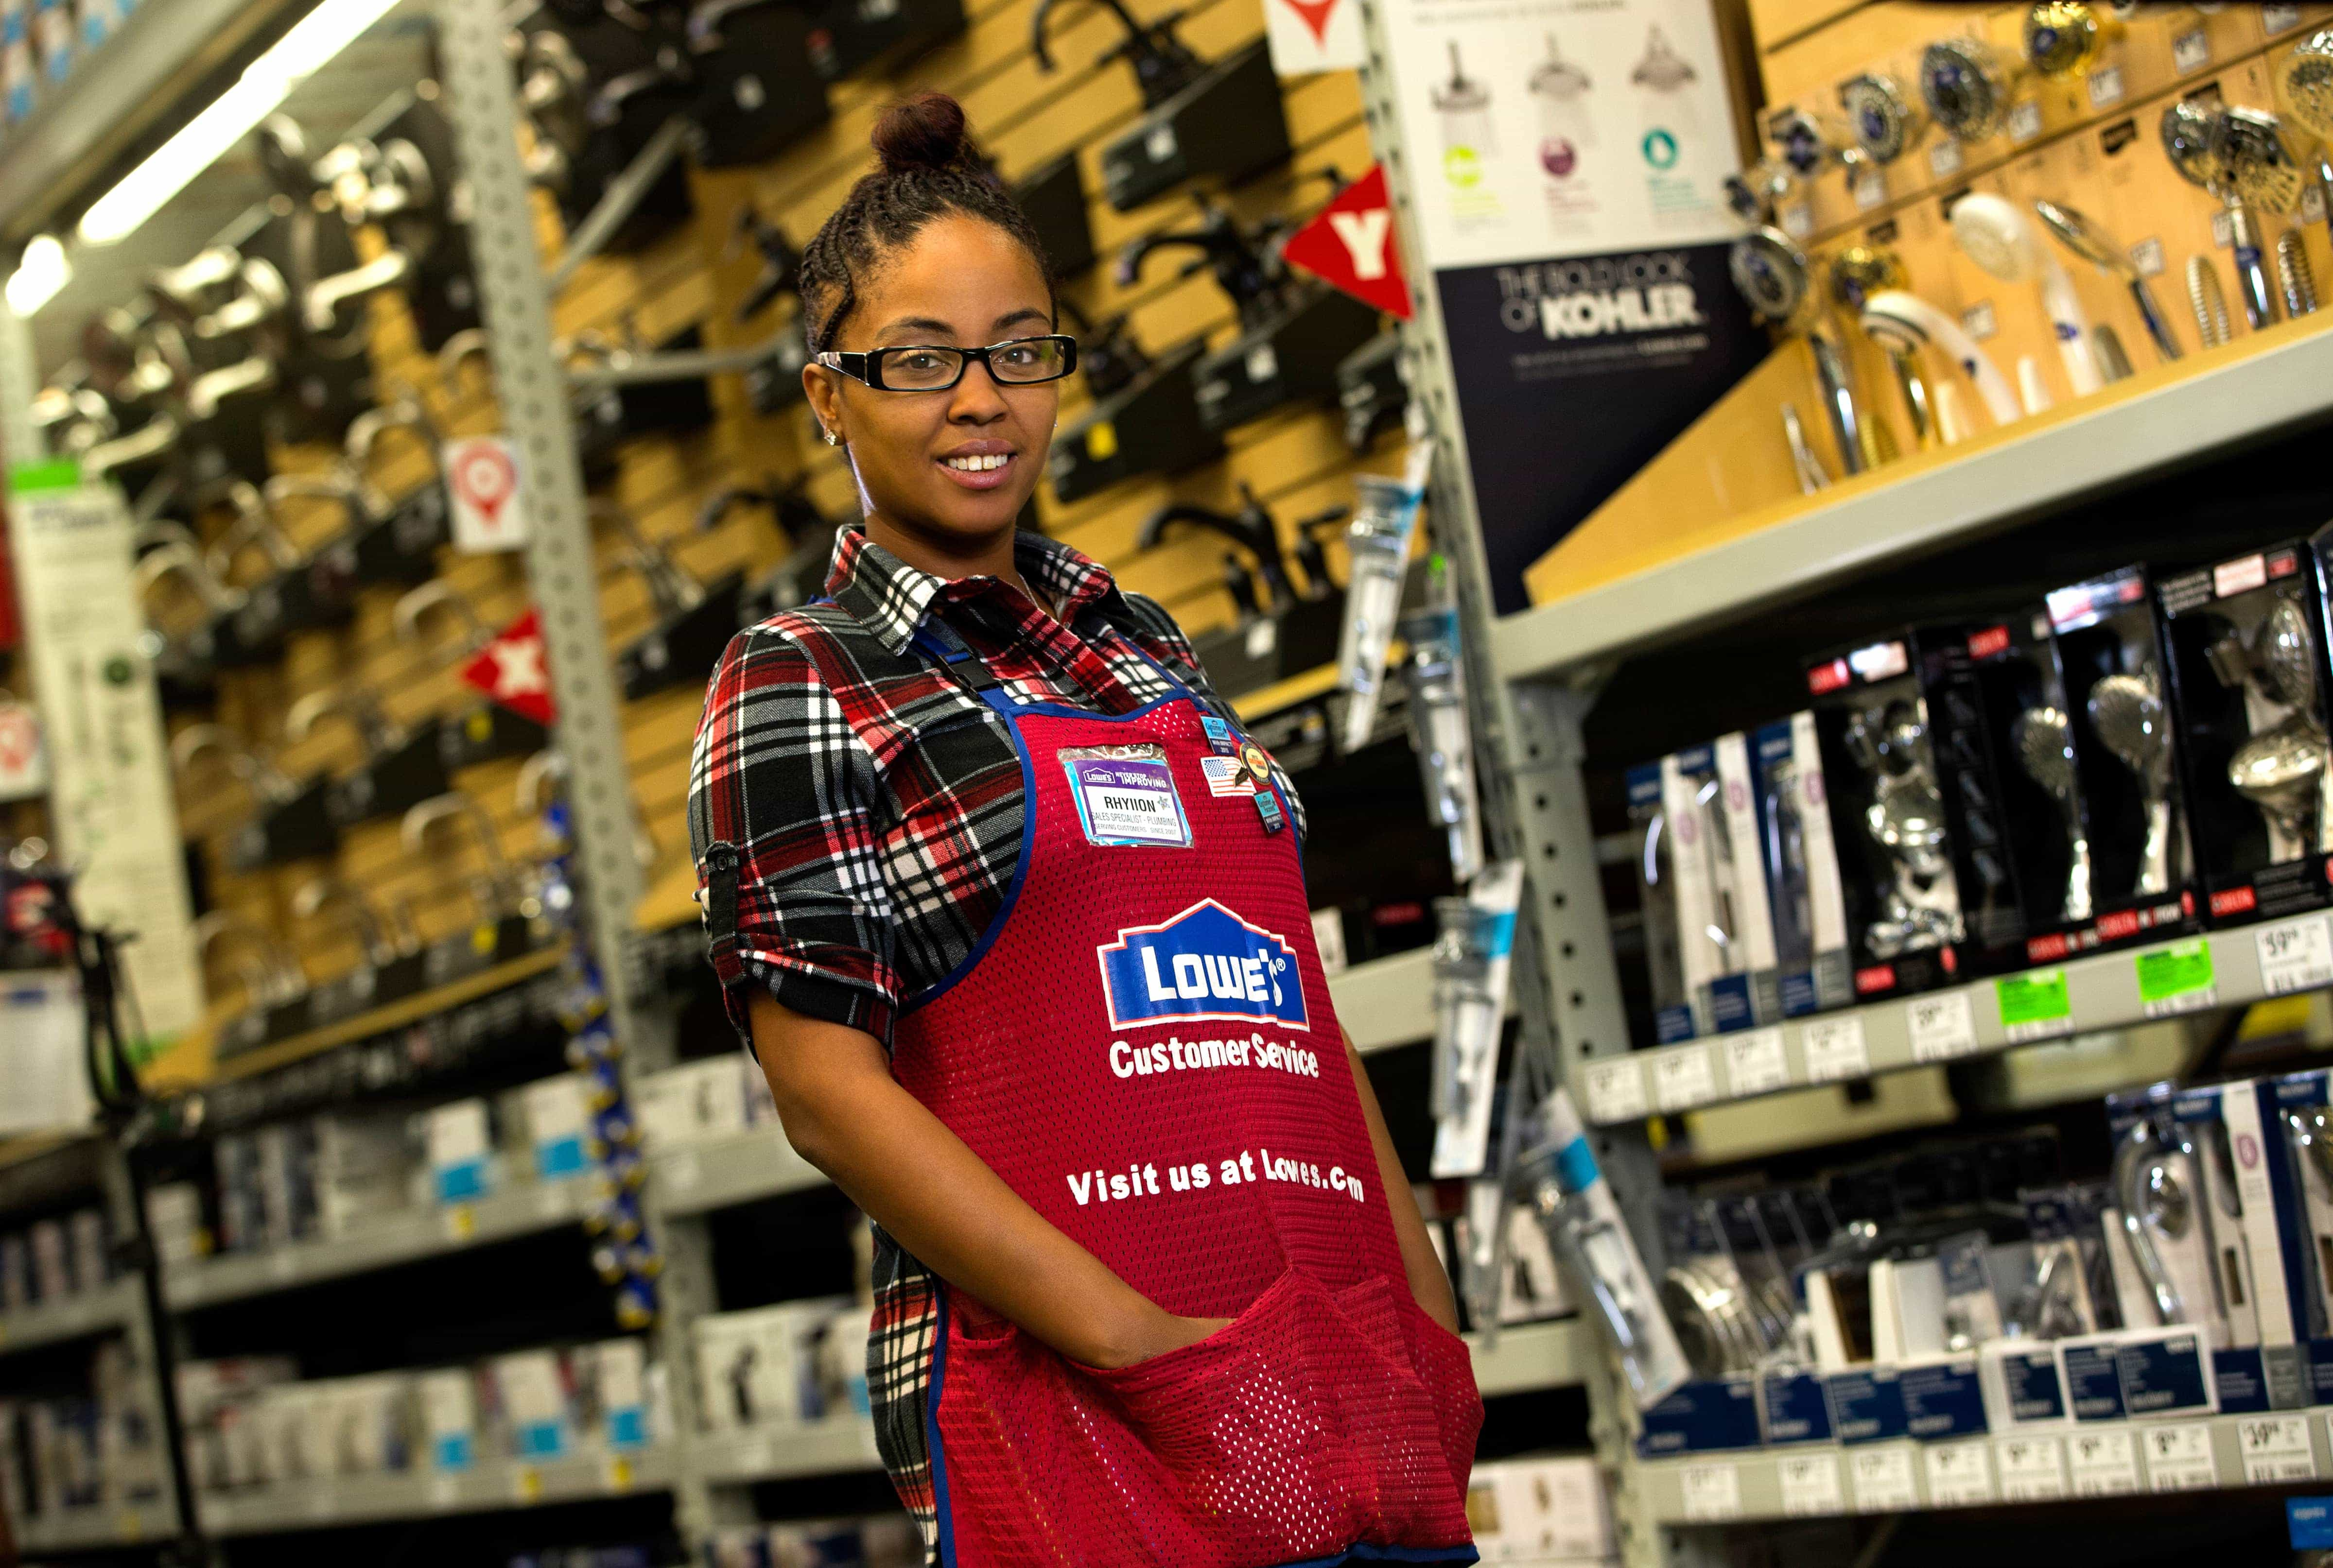 Could Lowe's Be a Millionaire Maker Stock?